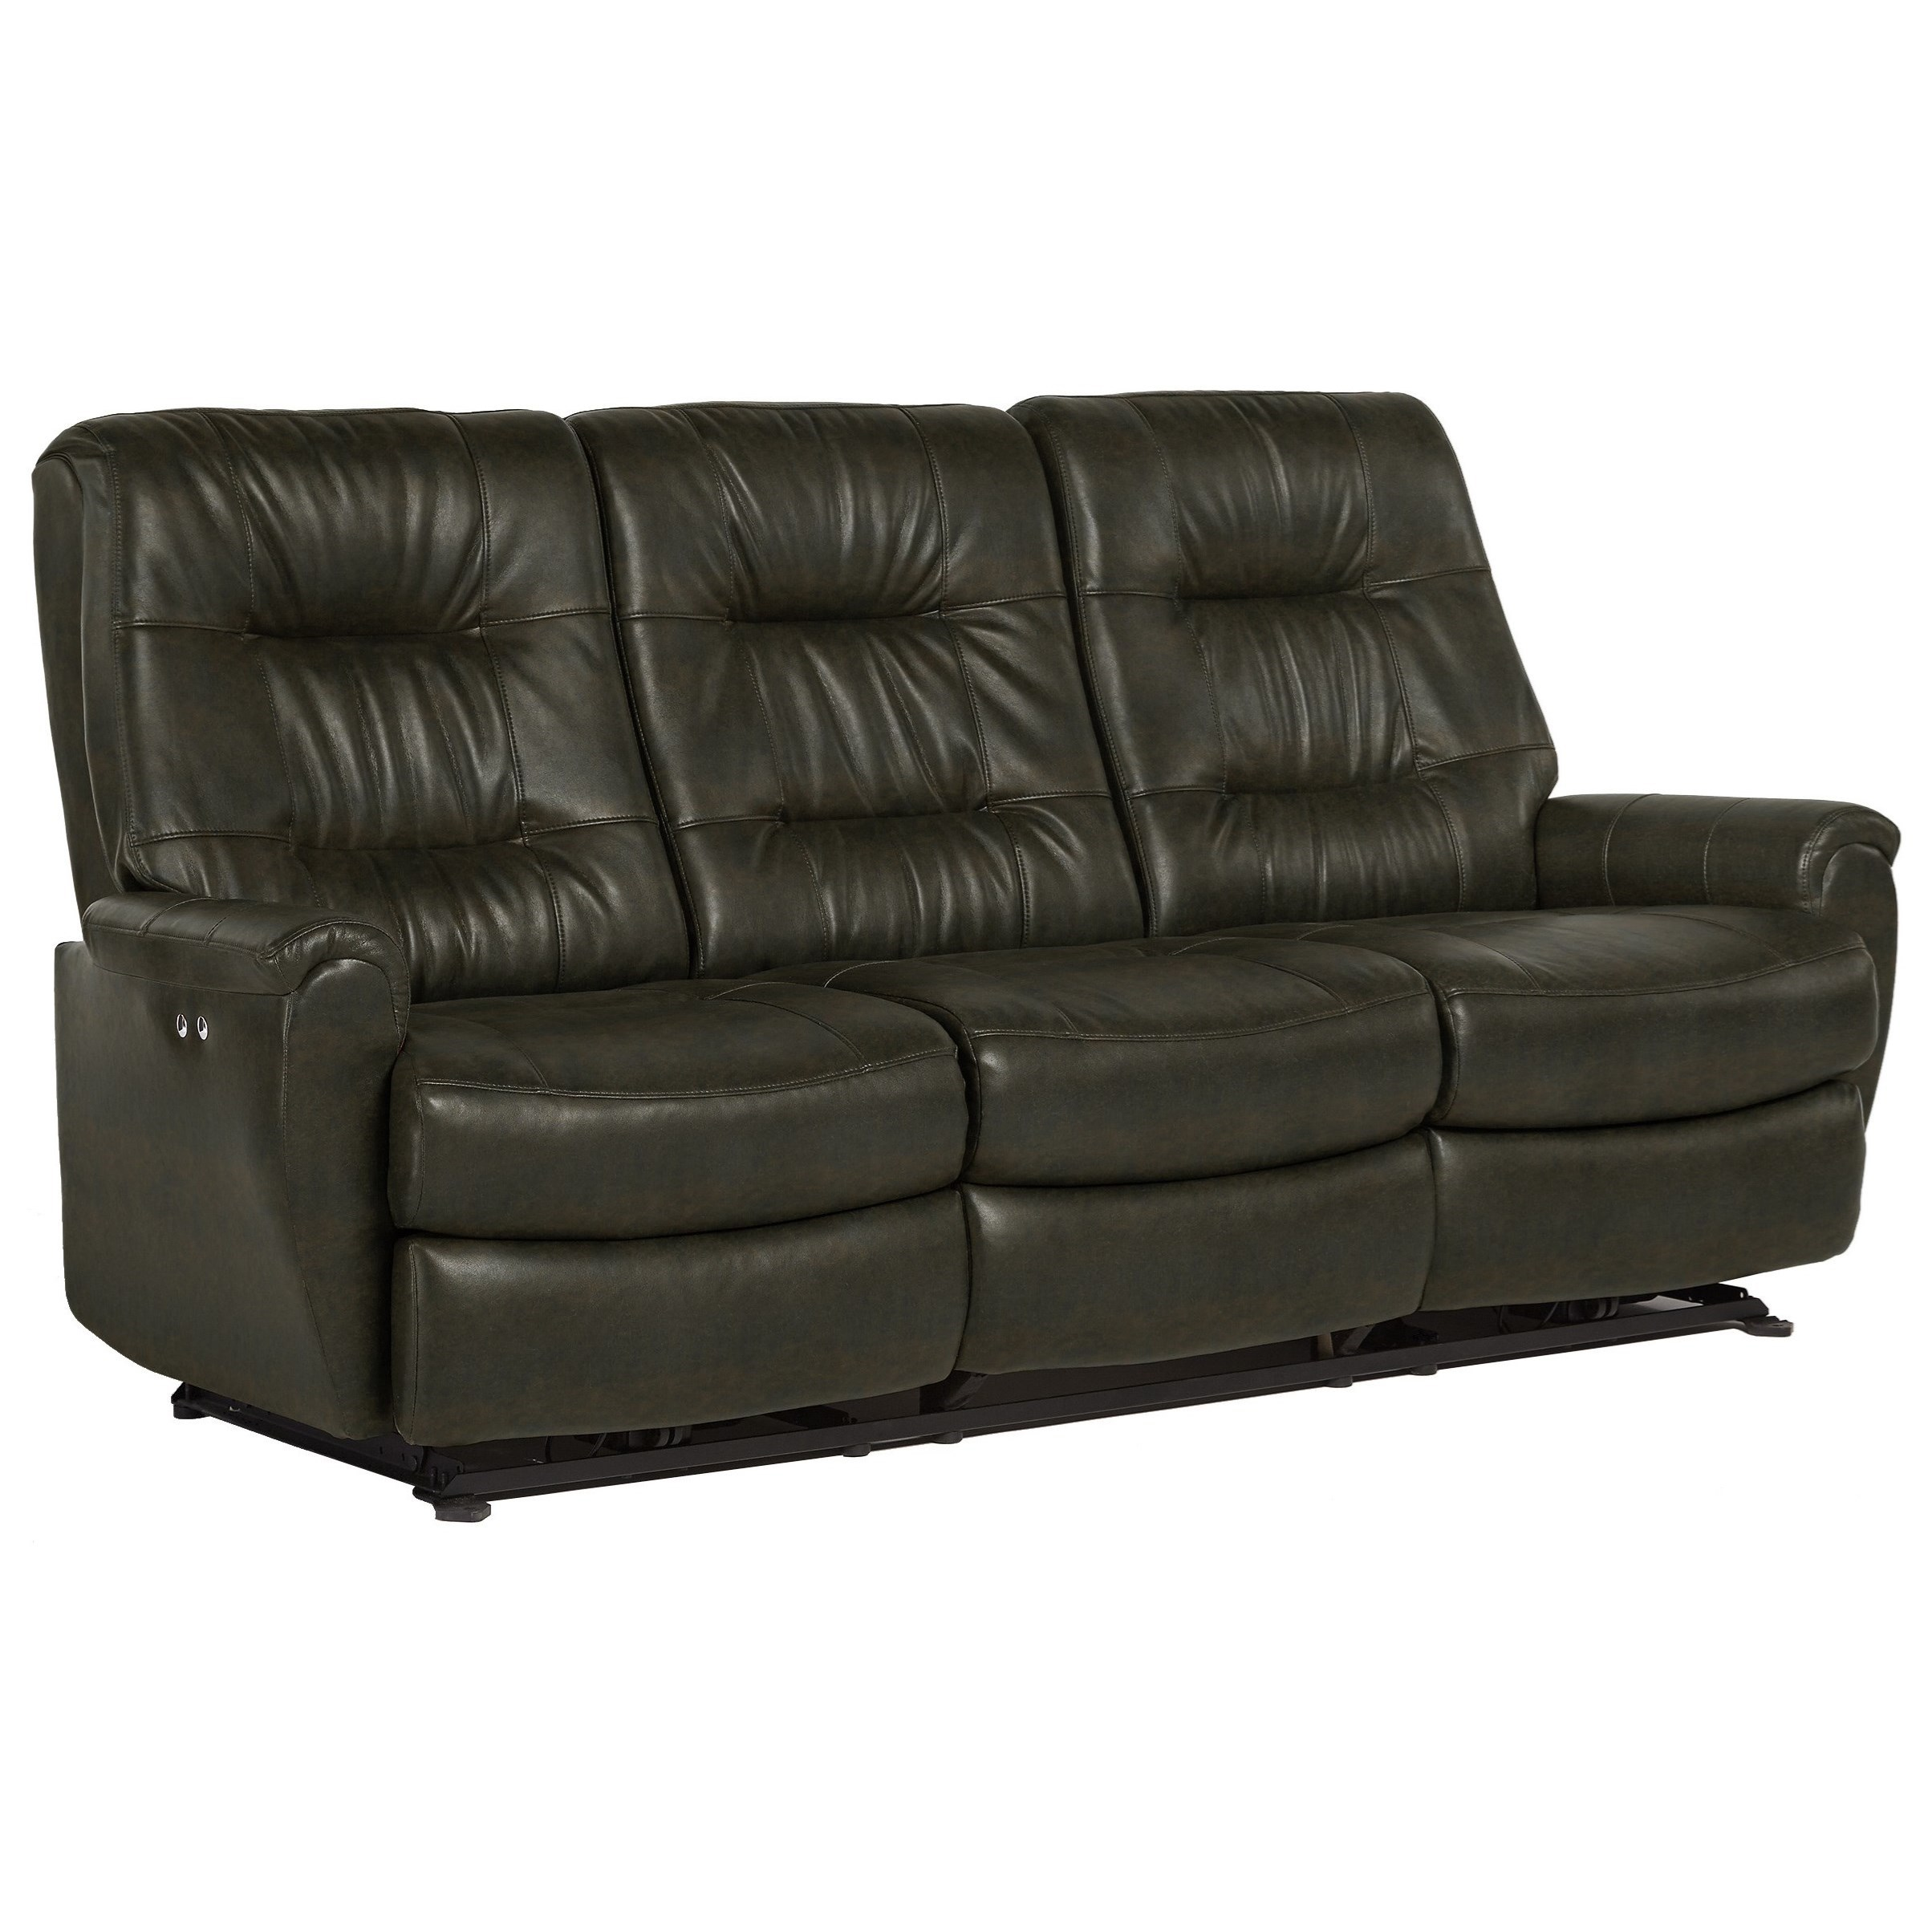 Best Home Furnishings Felicia Small Scale Power Reclining Sofa